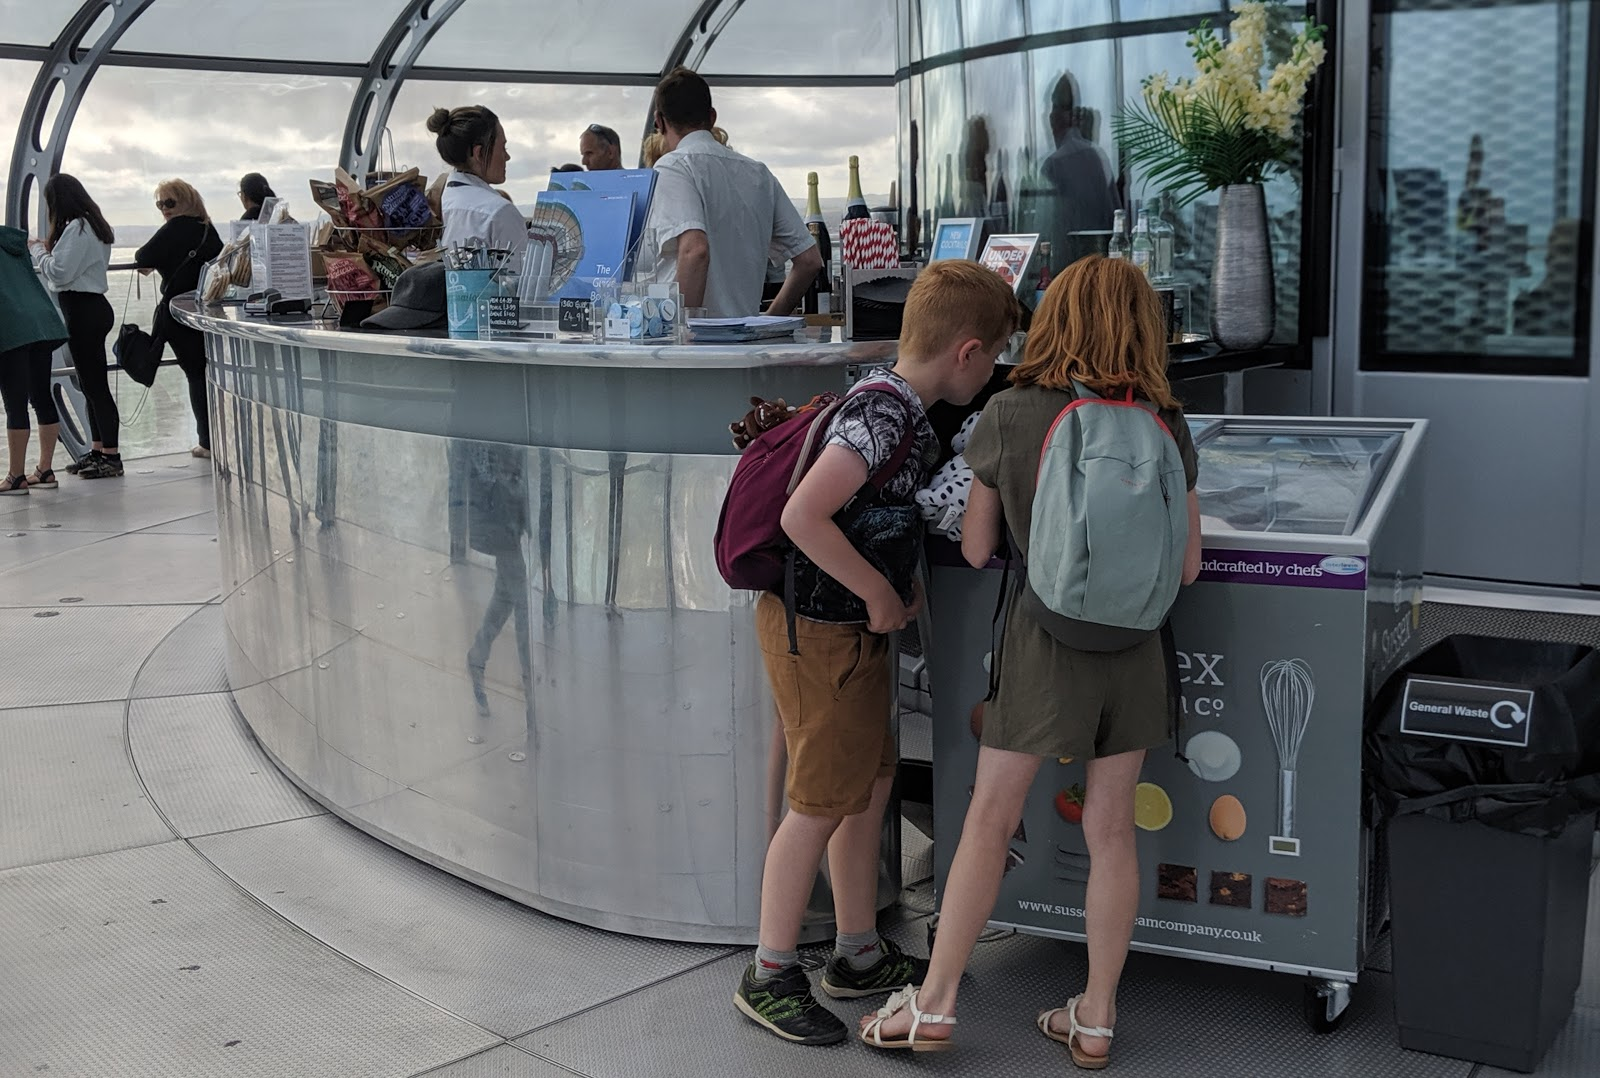 11 Top Tips for Visiting Brighton with Kids  - British Airways i360 sky bar